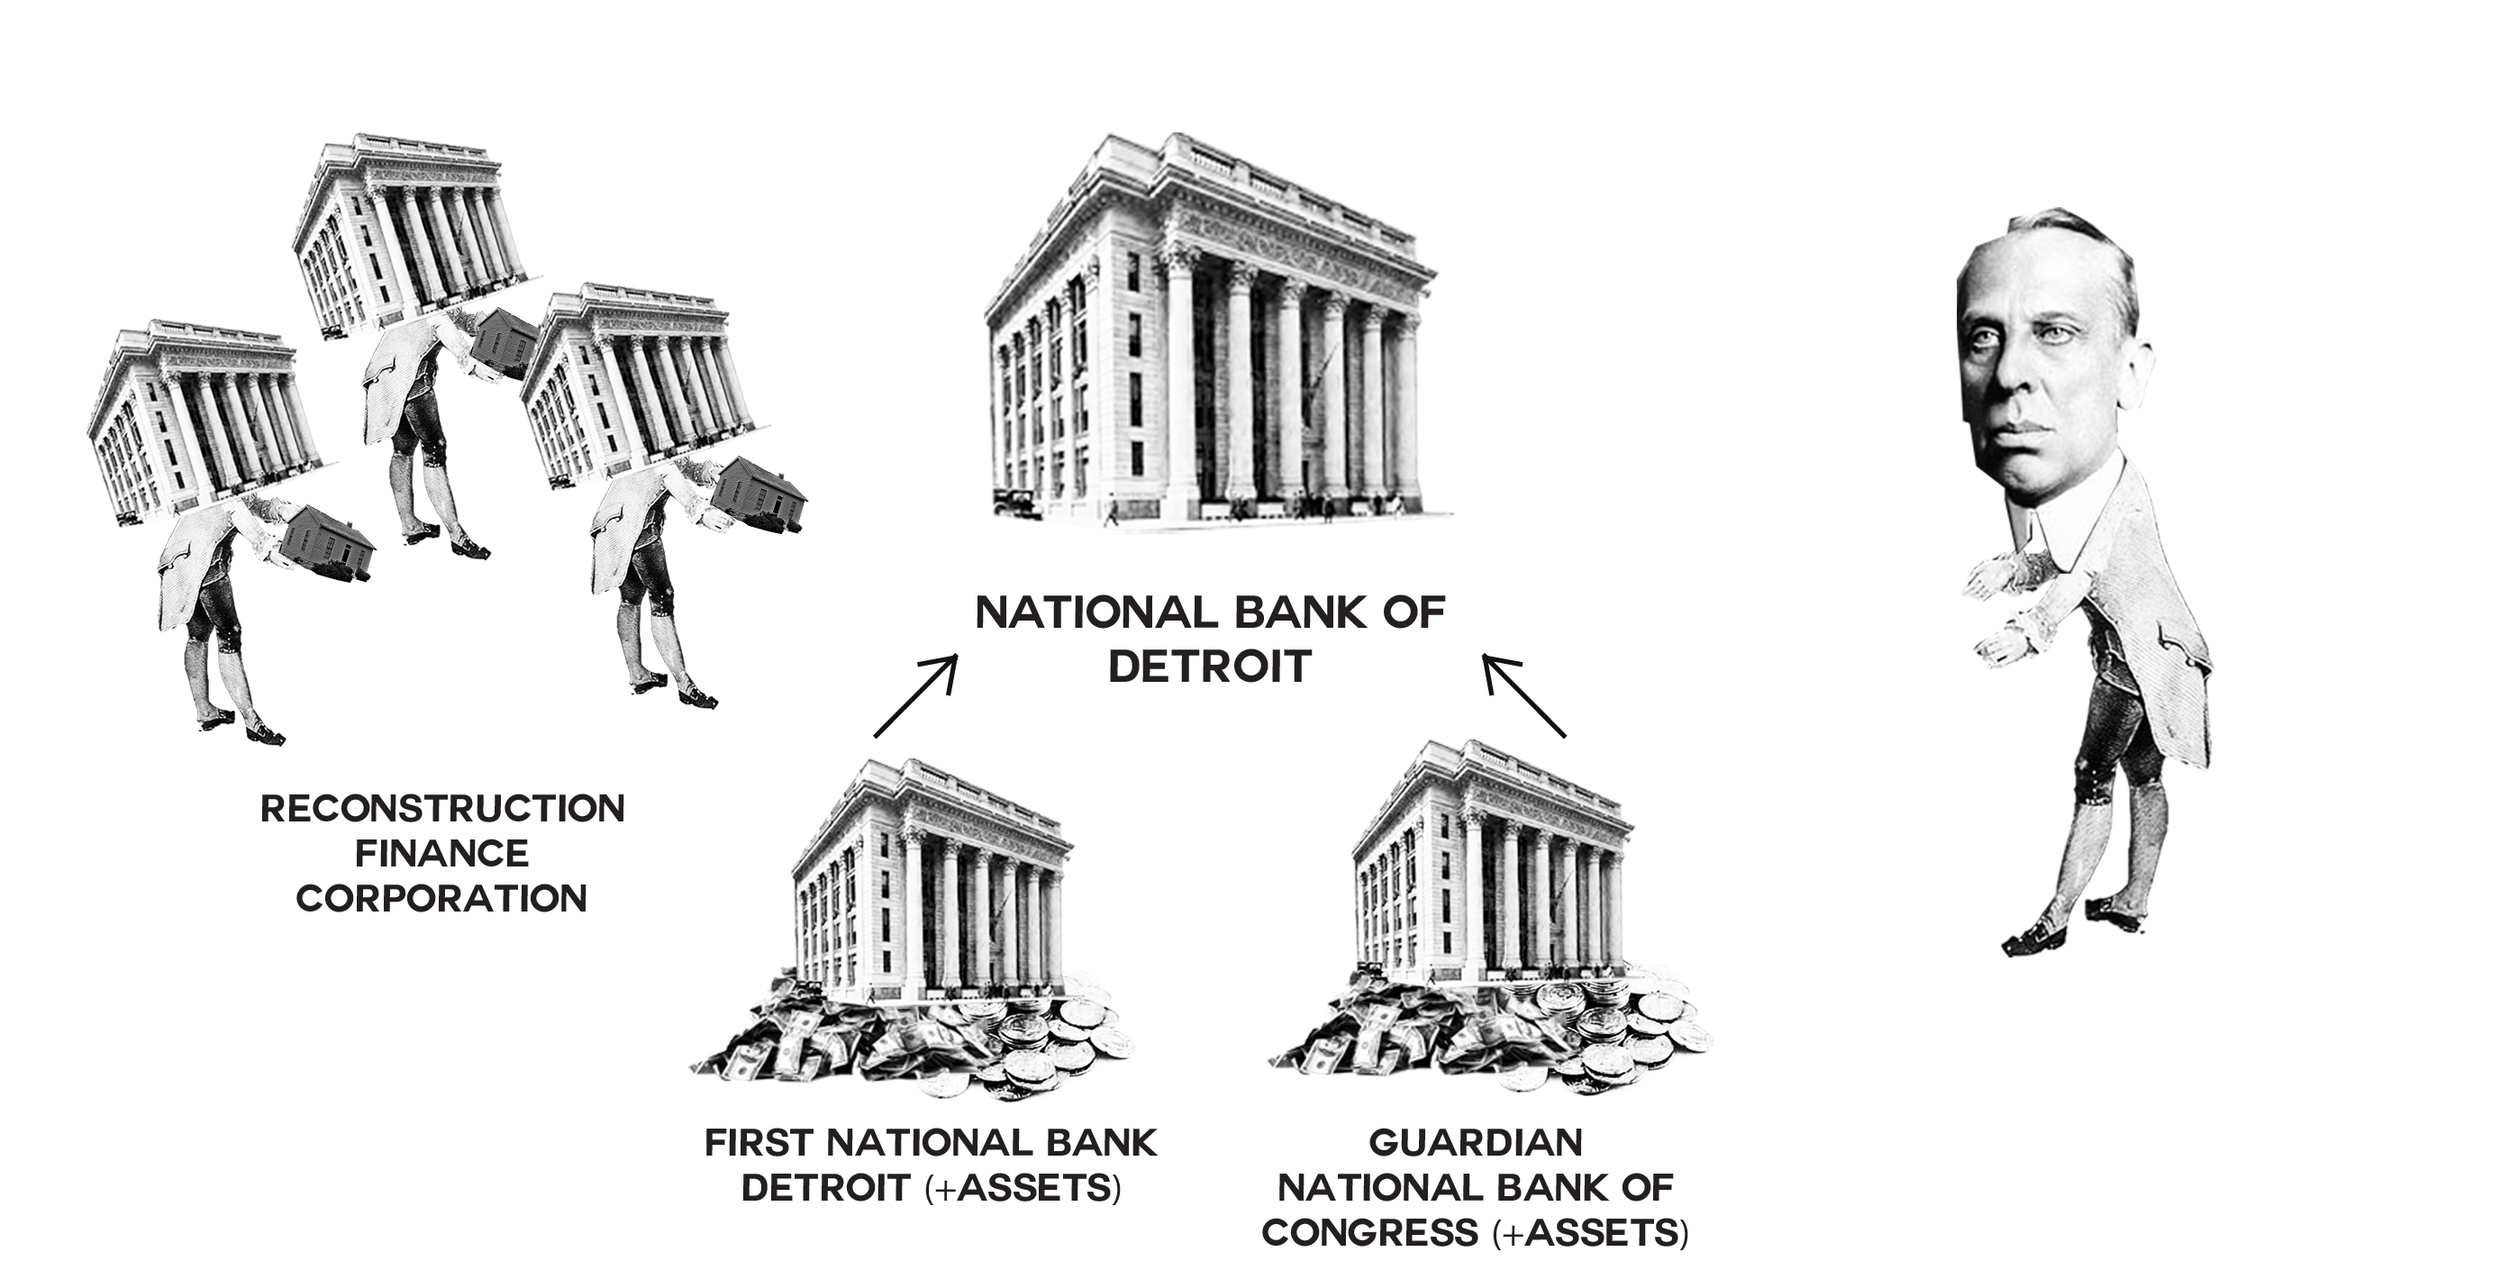 Act 3 Scene 2  Andrew Dexter leads to demise of bank because of paper currency (specie vs. current) because of his paper currency swindling scheme of owning far away banks and dispersing their paper currency at a far distance from the bank. First bank of Detroit is one of them.